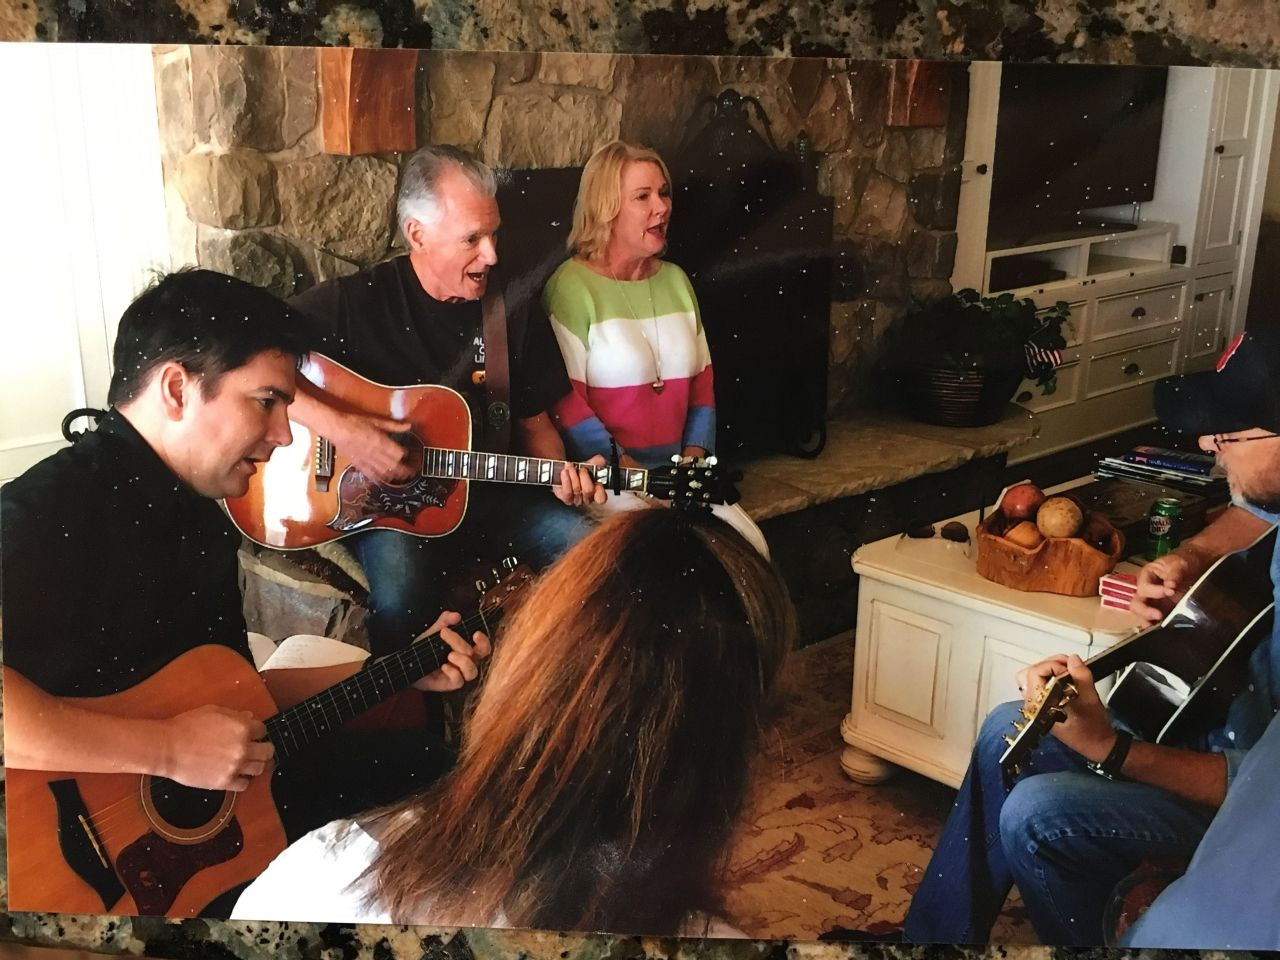 Family Living Room Concert at Ventura Beach House  - This is the pure essence of making music. Family and Friends in a music circle by the fireplace. Sigh, what joy!  GuitarMusicLive.com